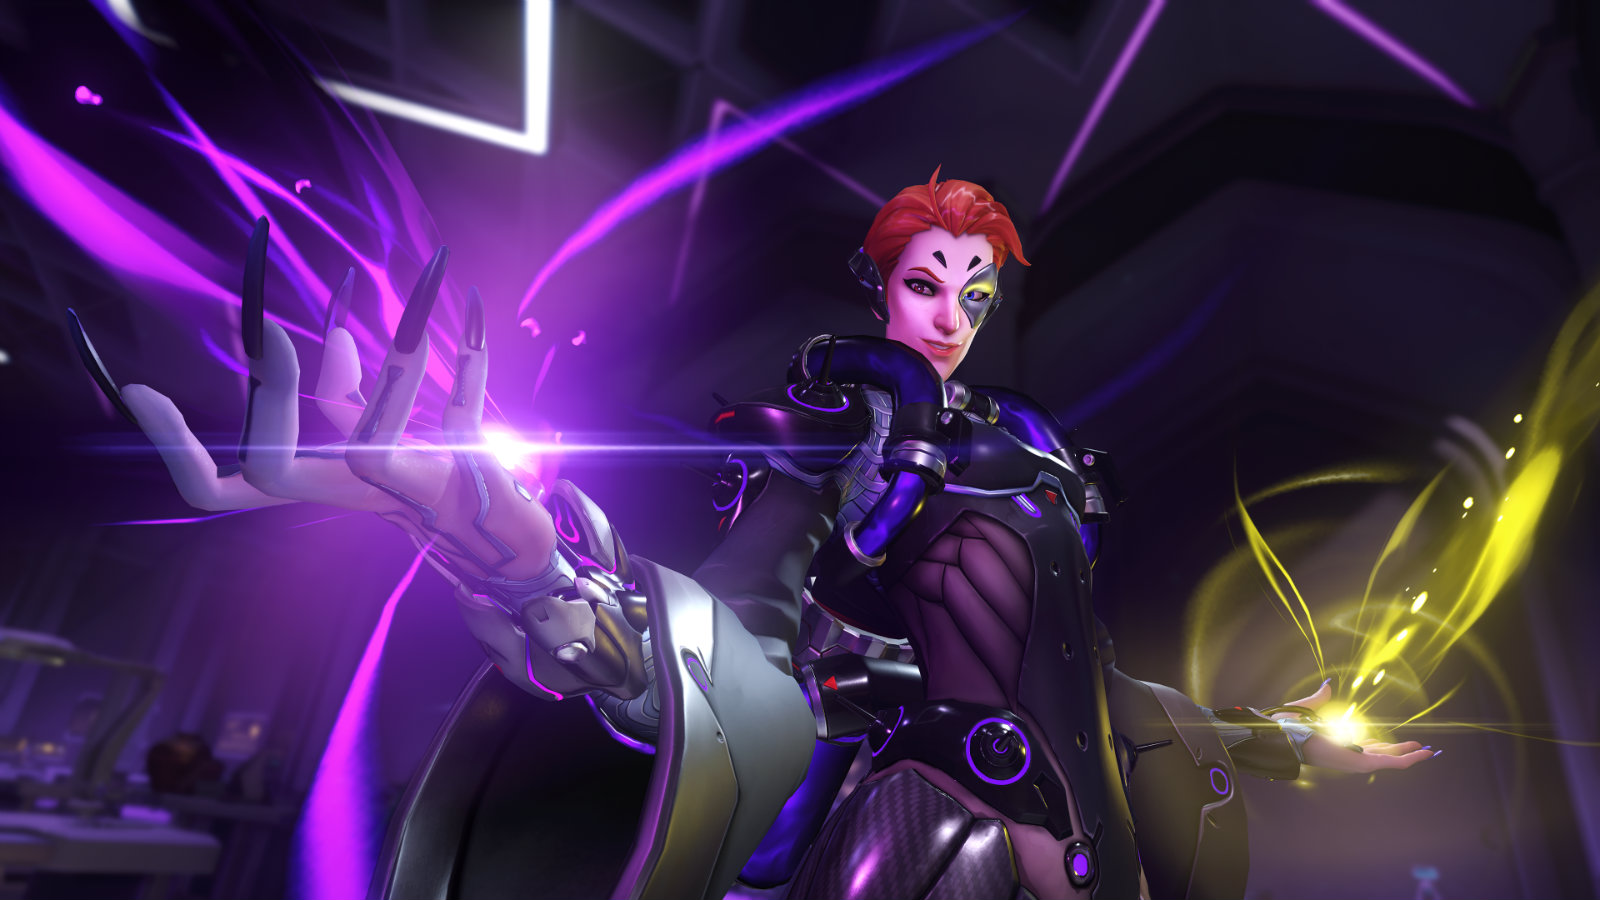 Moira activated Orbs